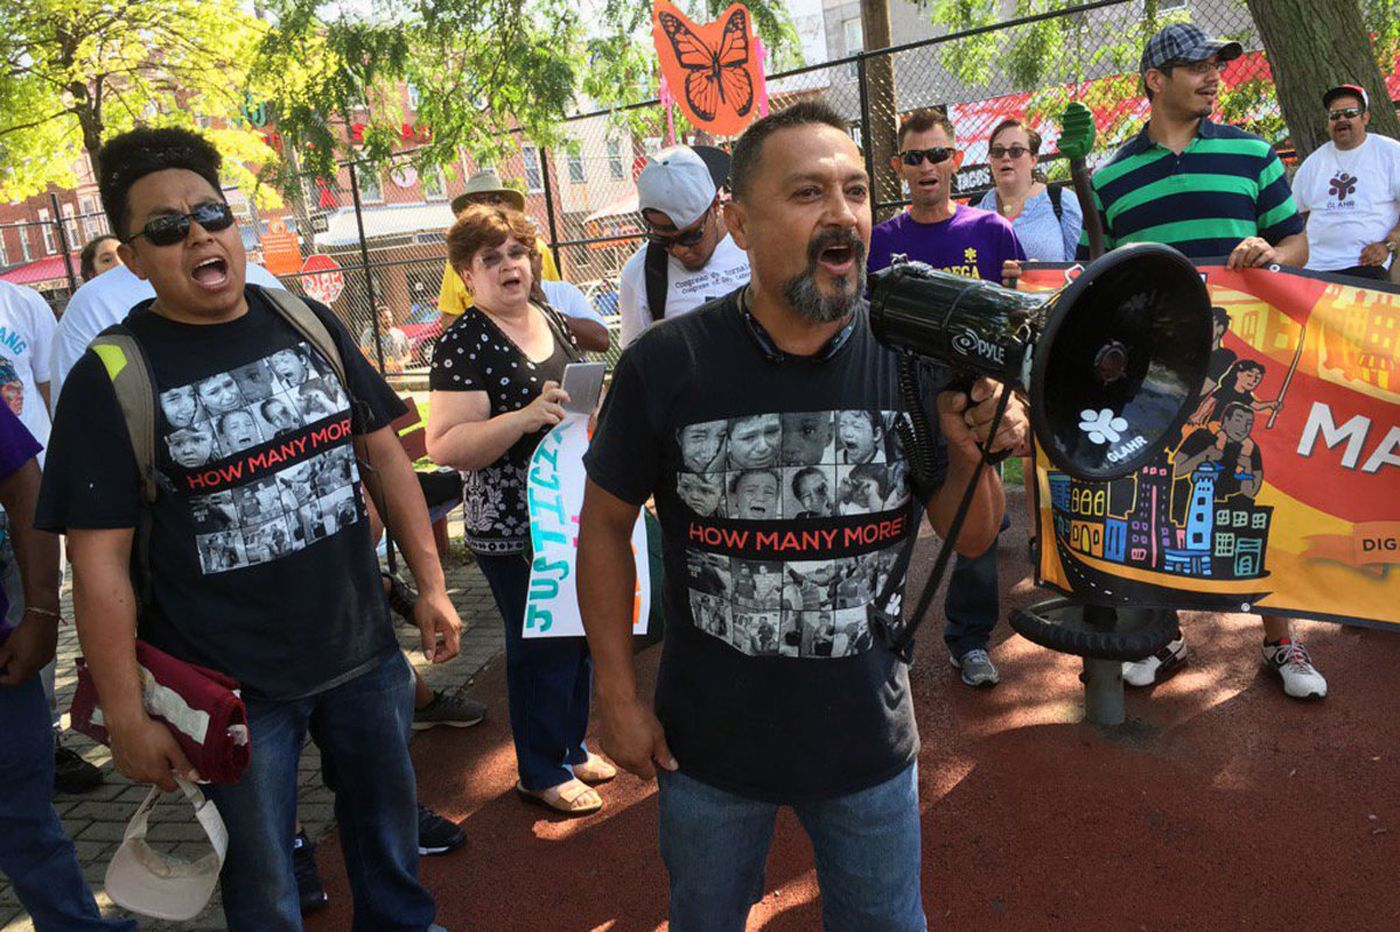 Mayors champion immigration; activists march against Trump